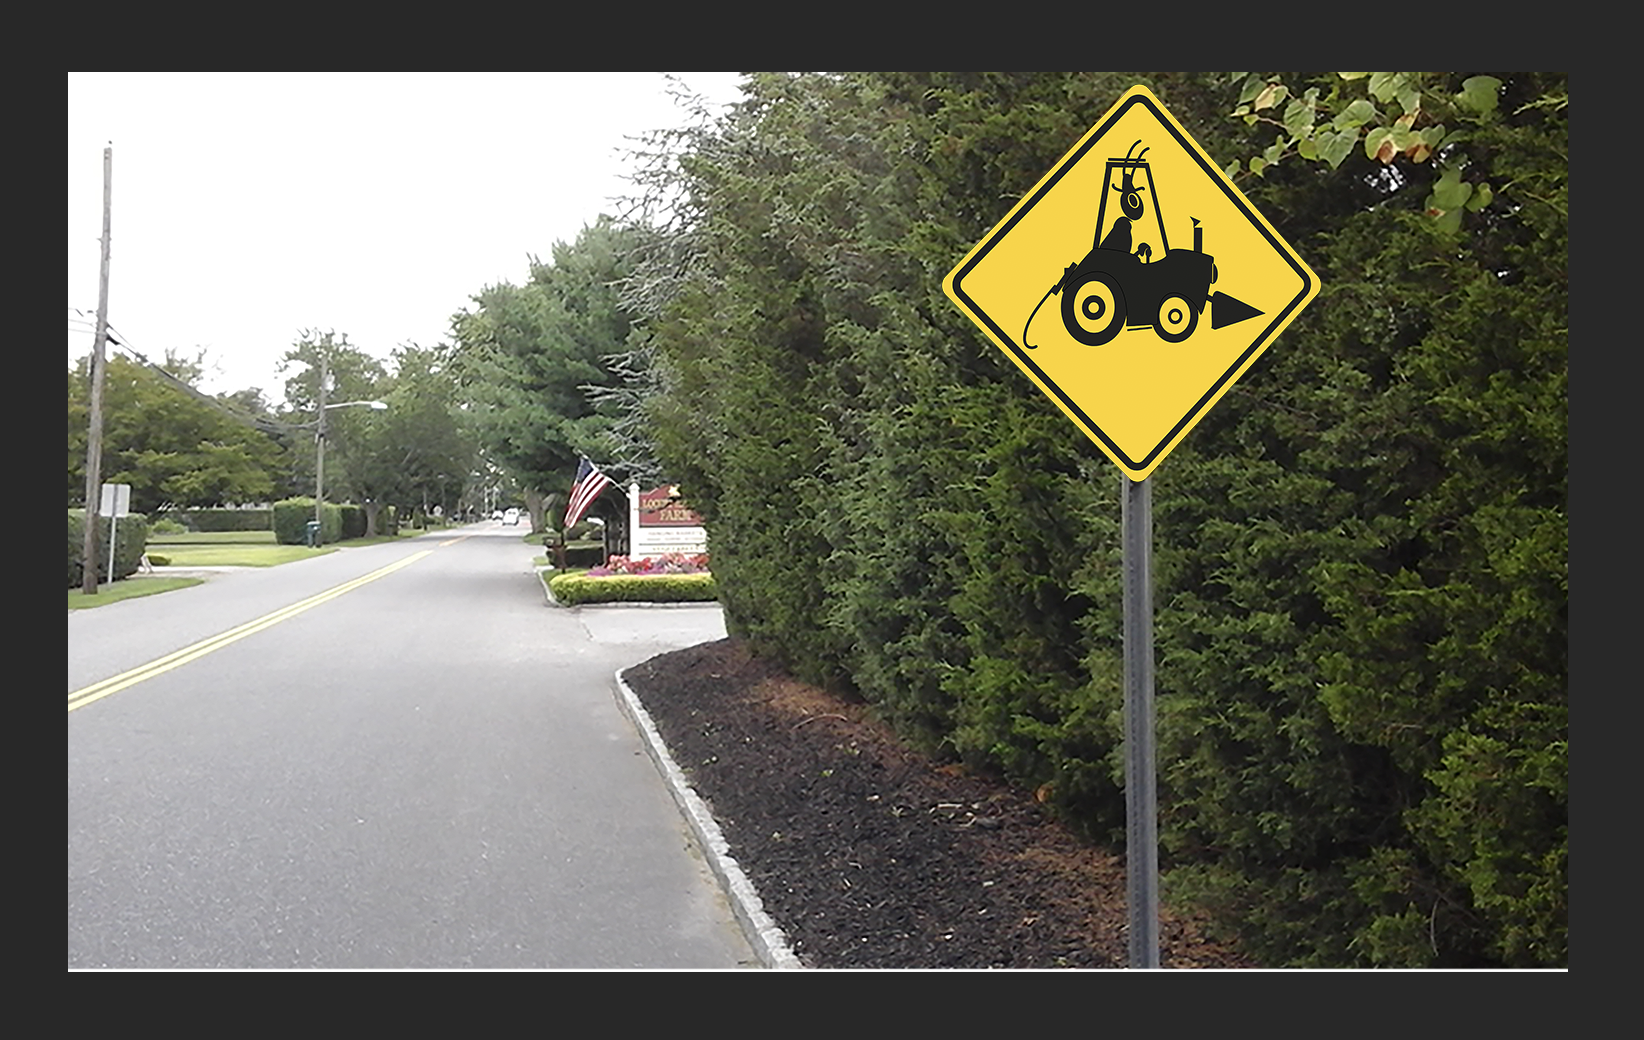 Curtis Jackson created the photo piece with the road sign​; the location is Bohemia, New York